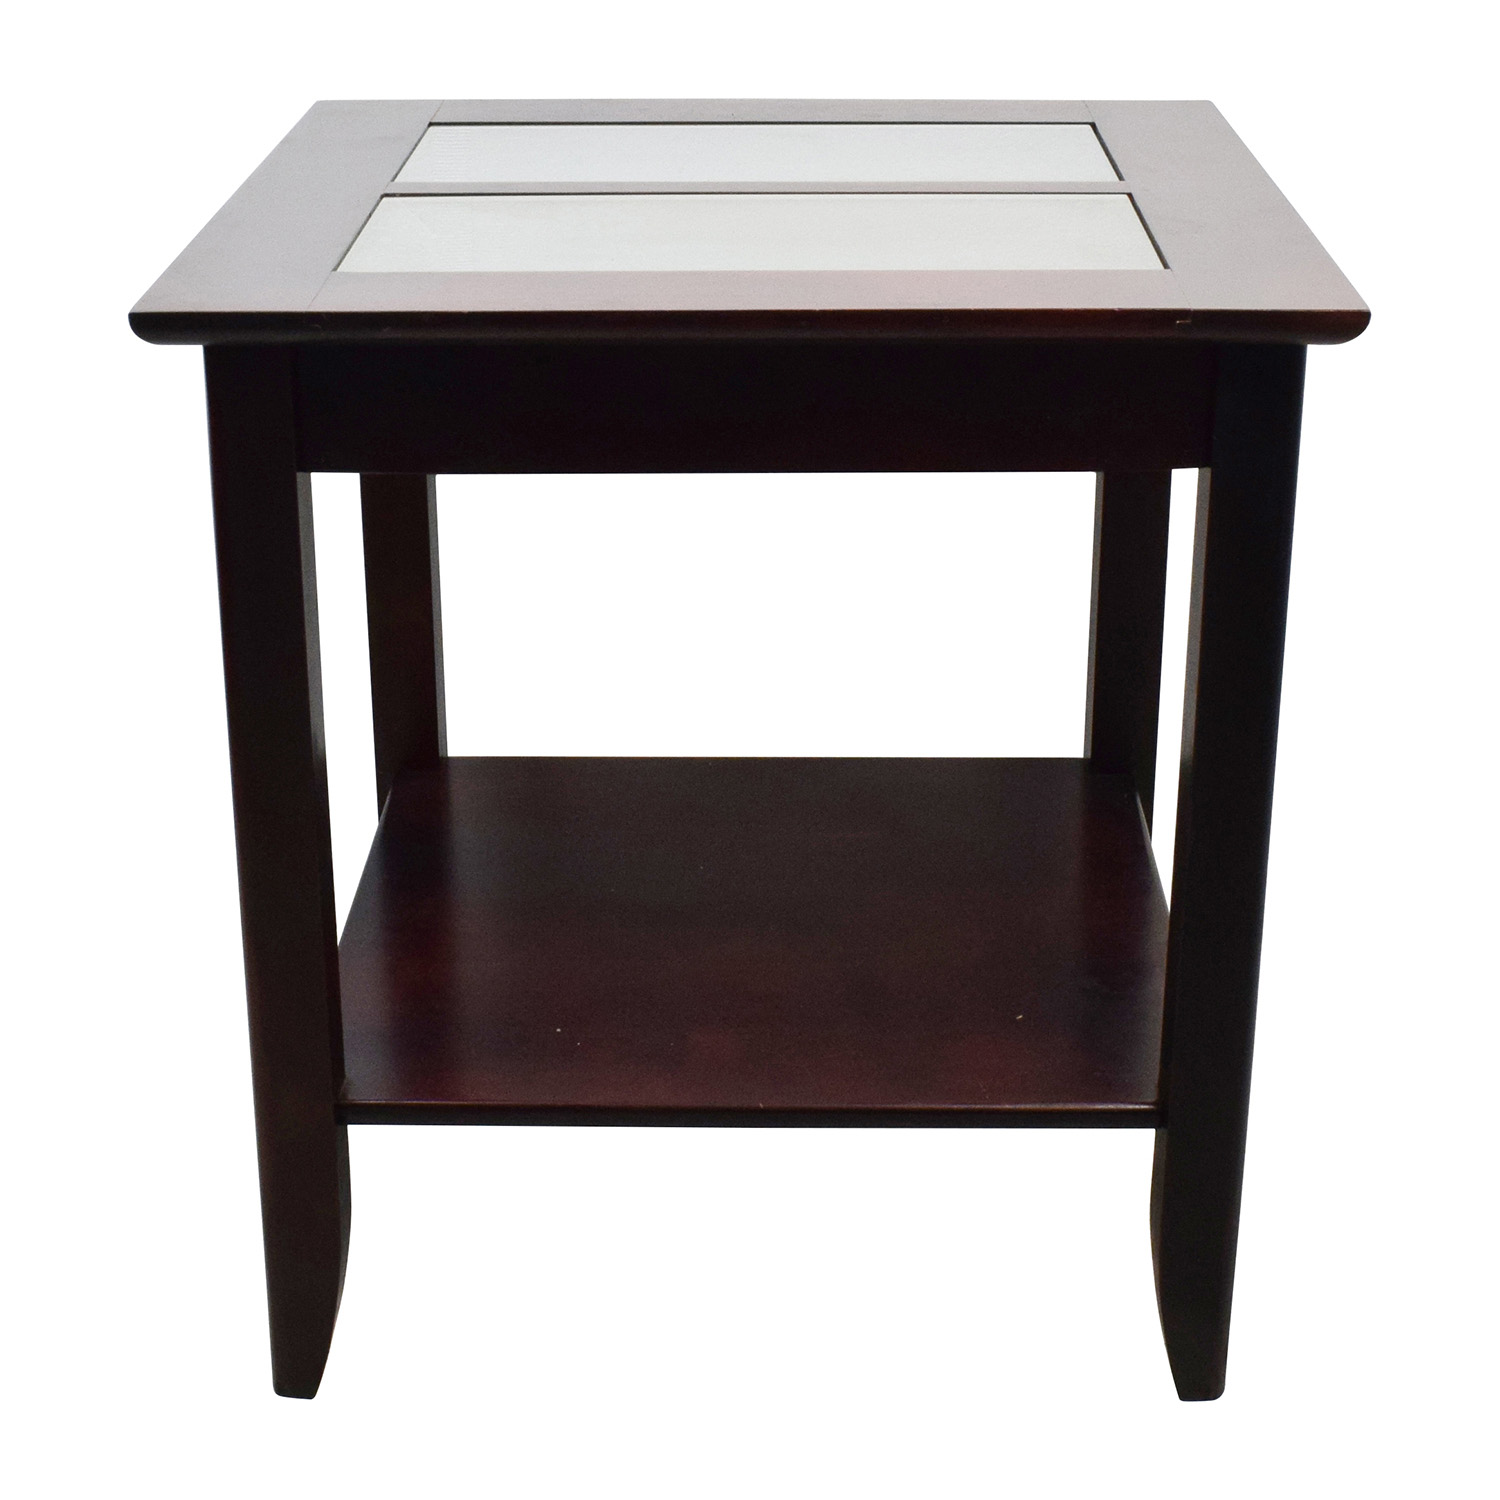 sofa tables target low profile modern table images decoration ideas